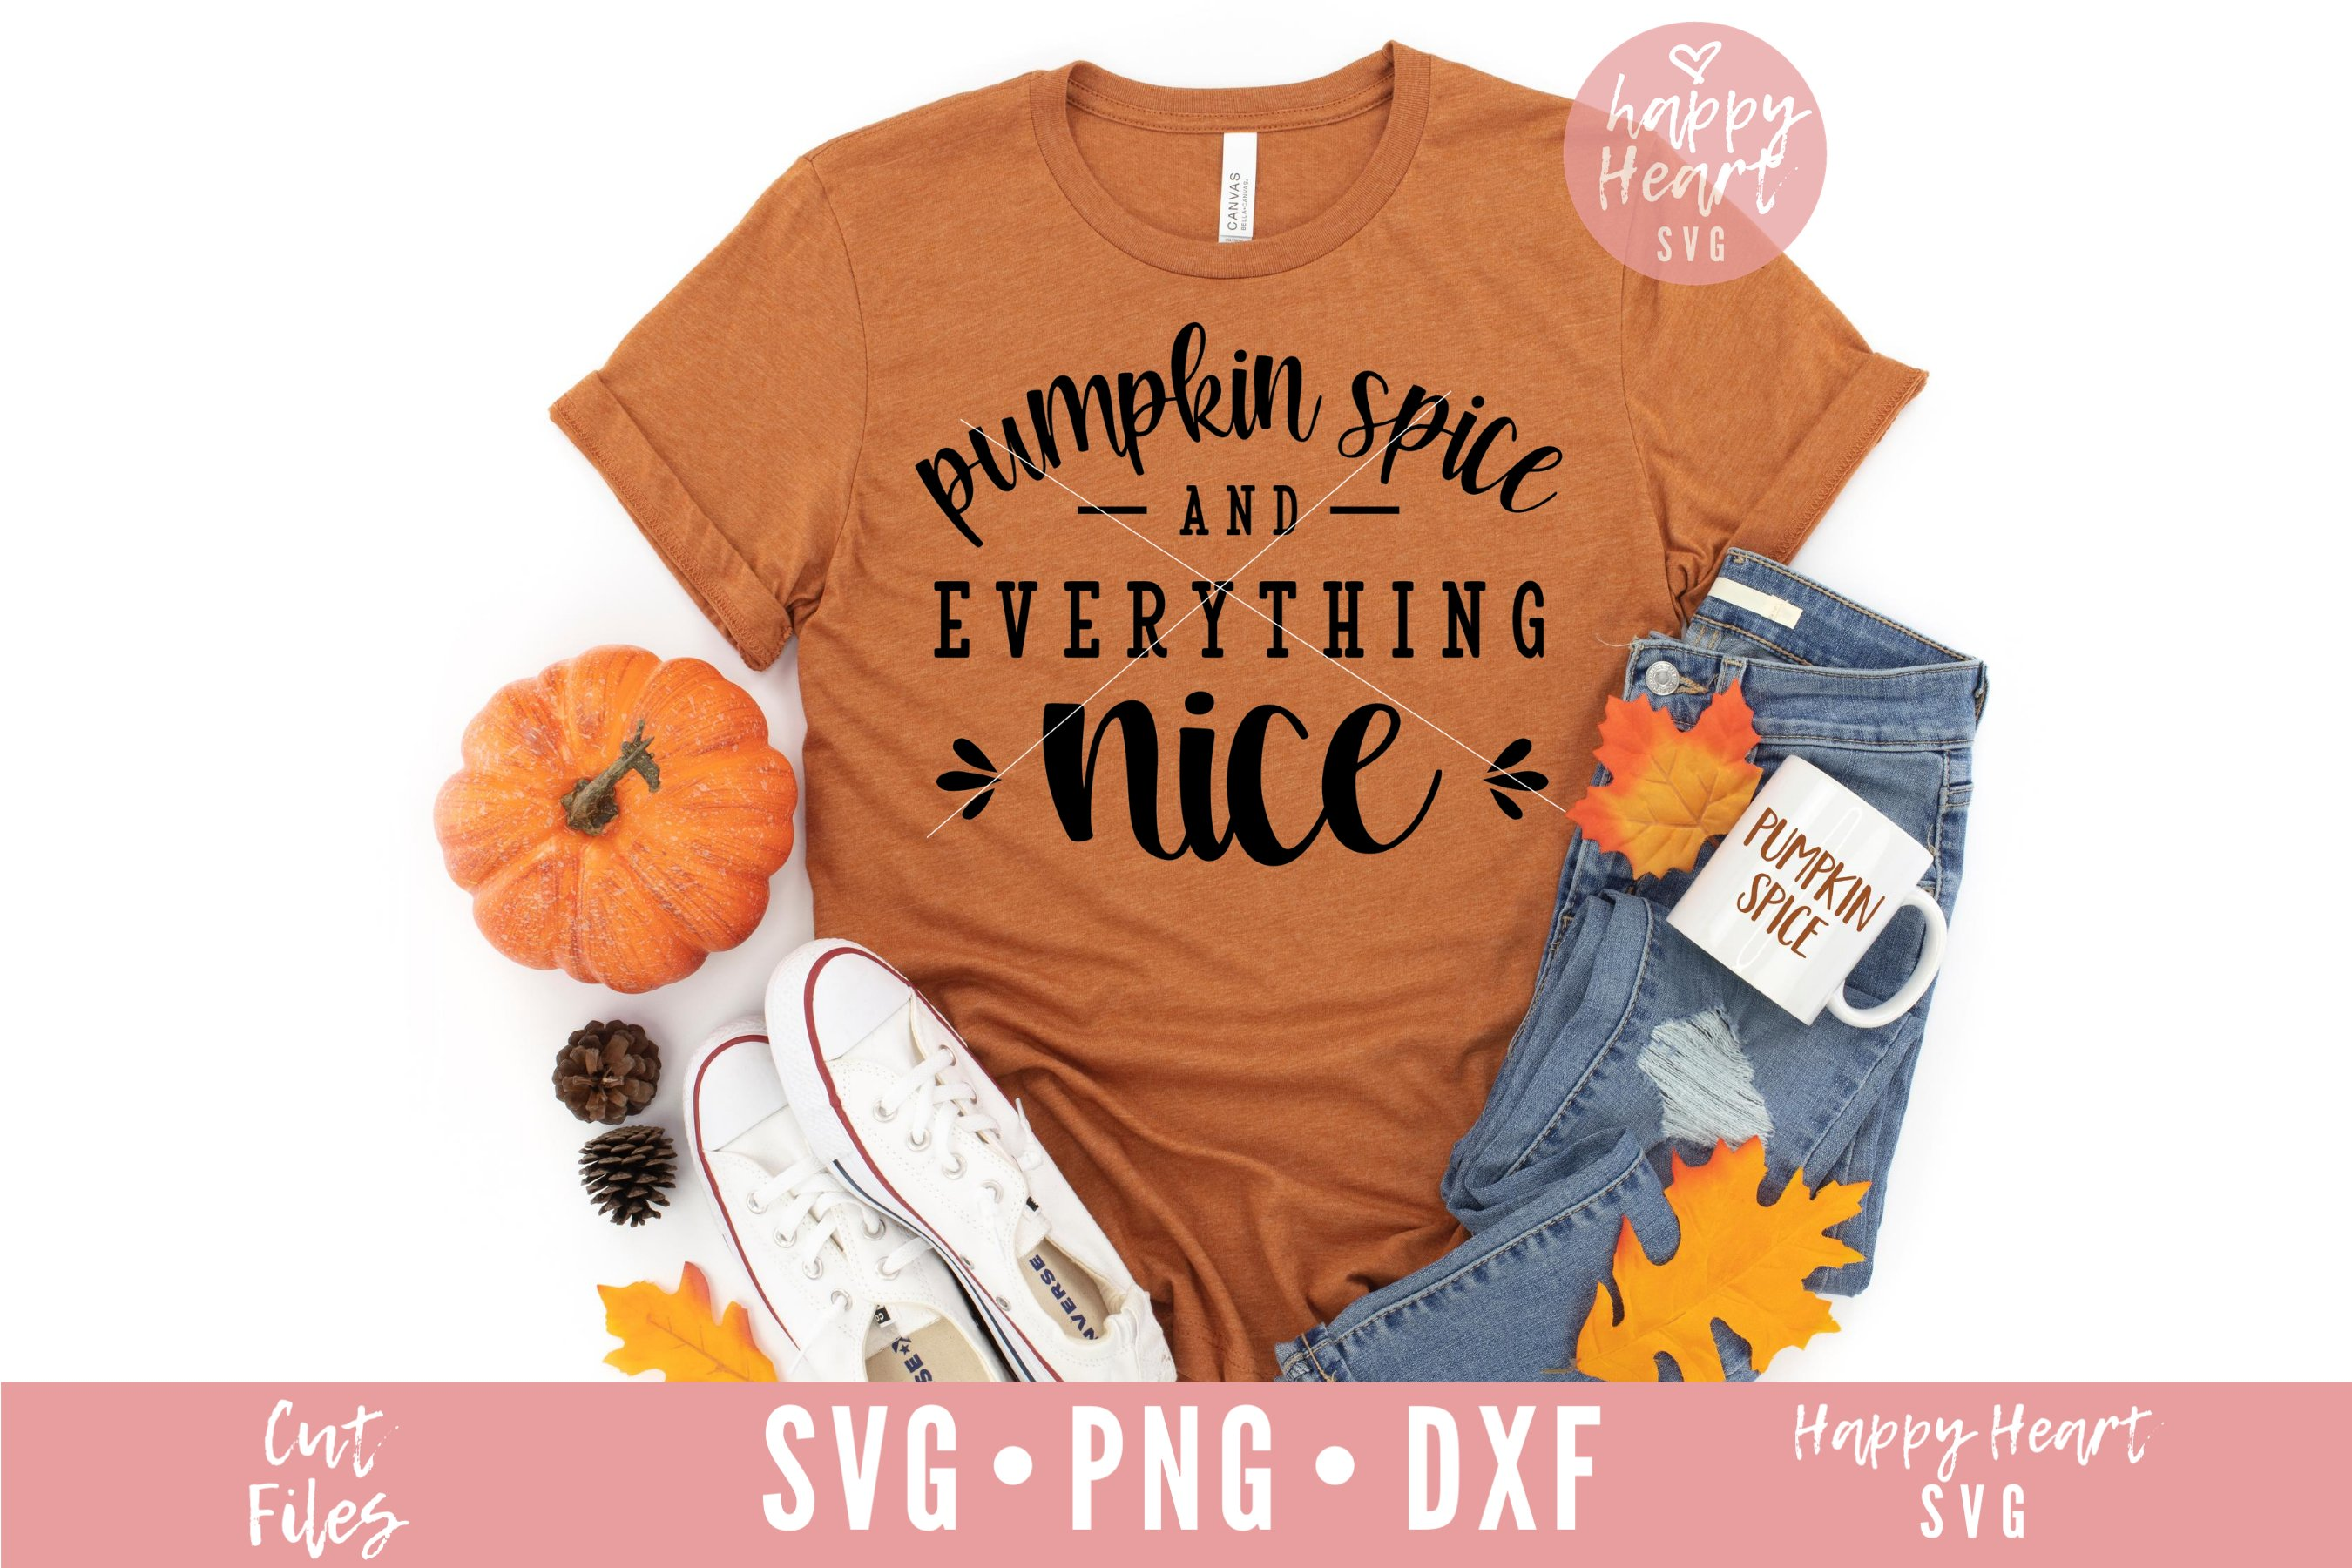 Download Pumpkin Spice And Everything That's Nice / Svg Png Jpeg Dxf DXF